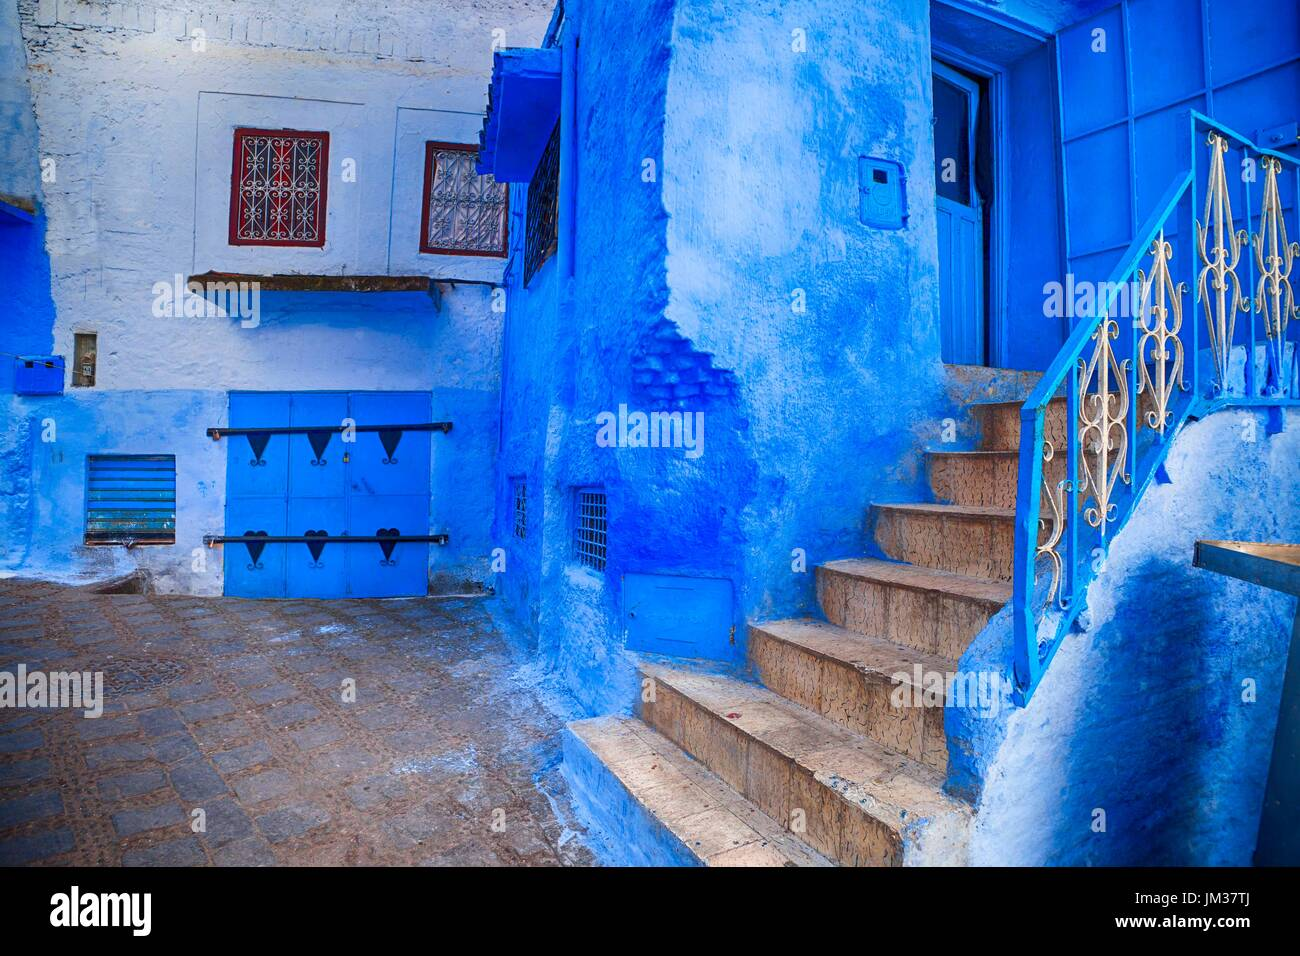 The Blue City, Morocco - Stock Image